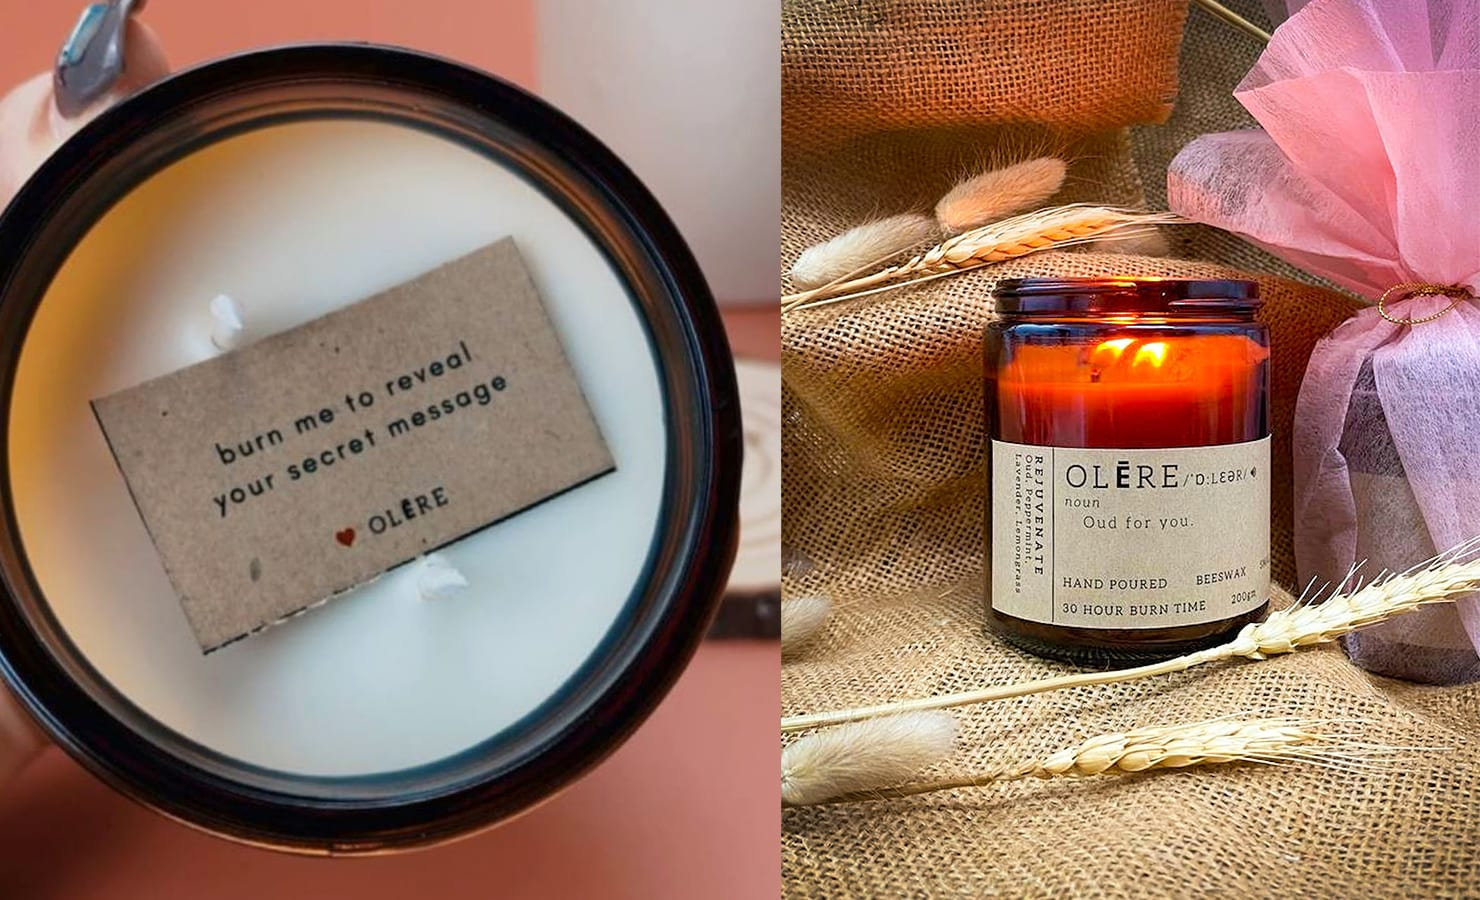 bloomthis-qixi-festival-gift-guide-2021-05-olere-secret message-candle